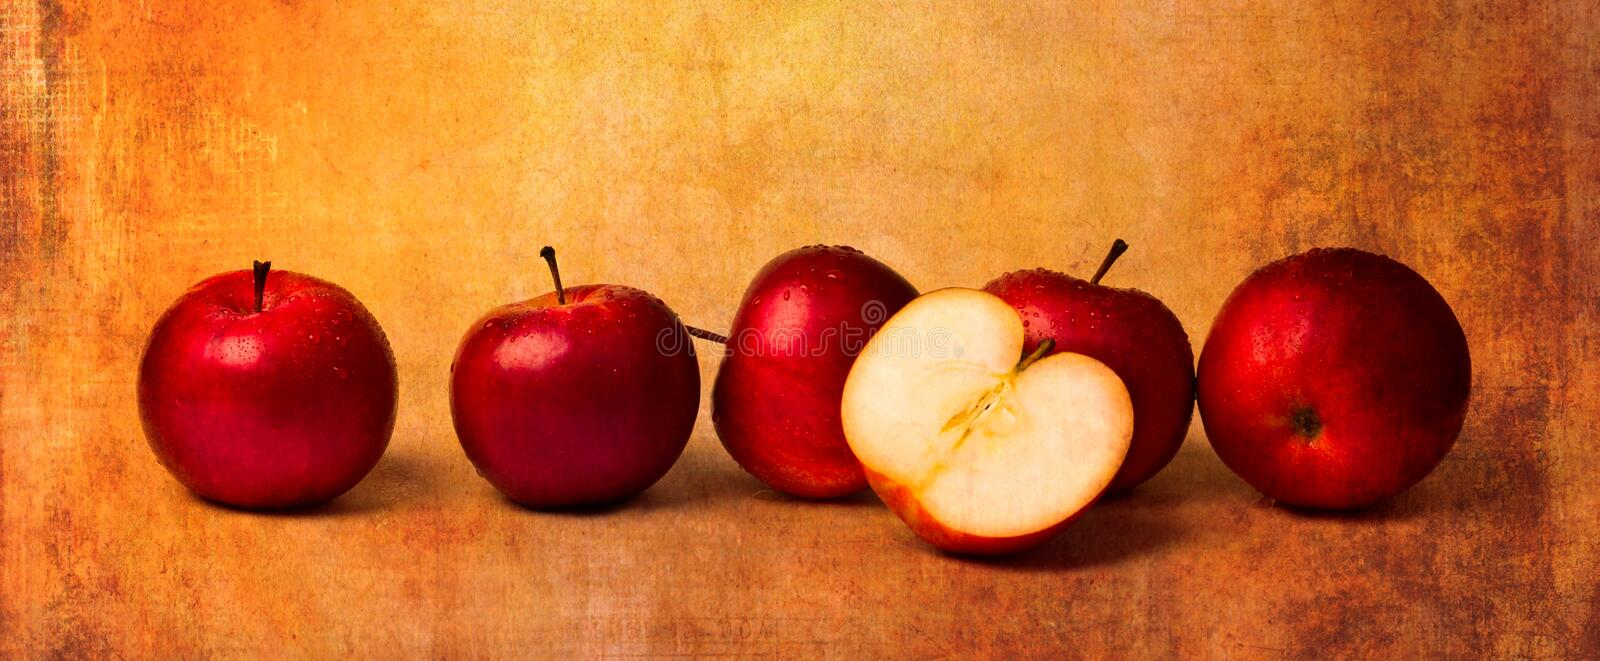 Apples In Red stock images